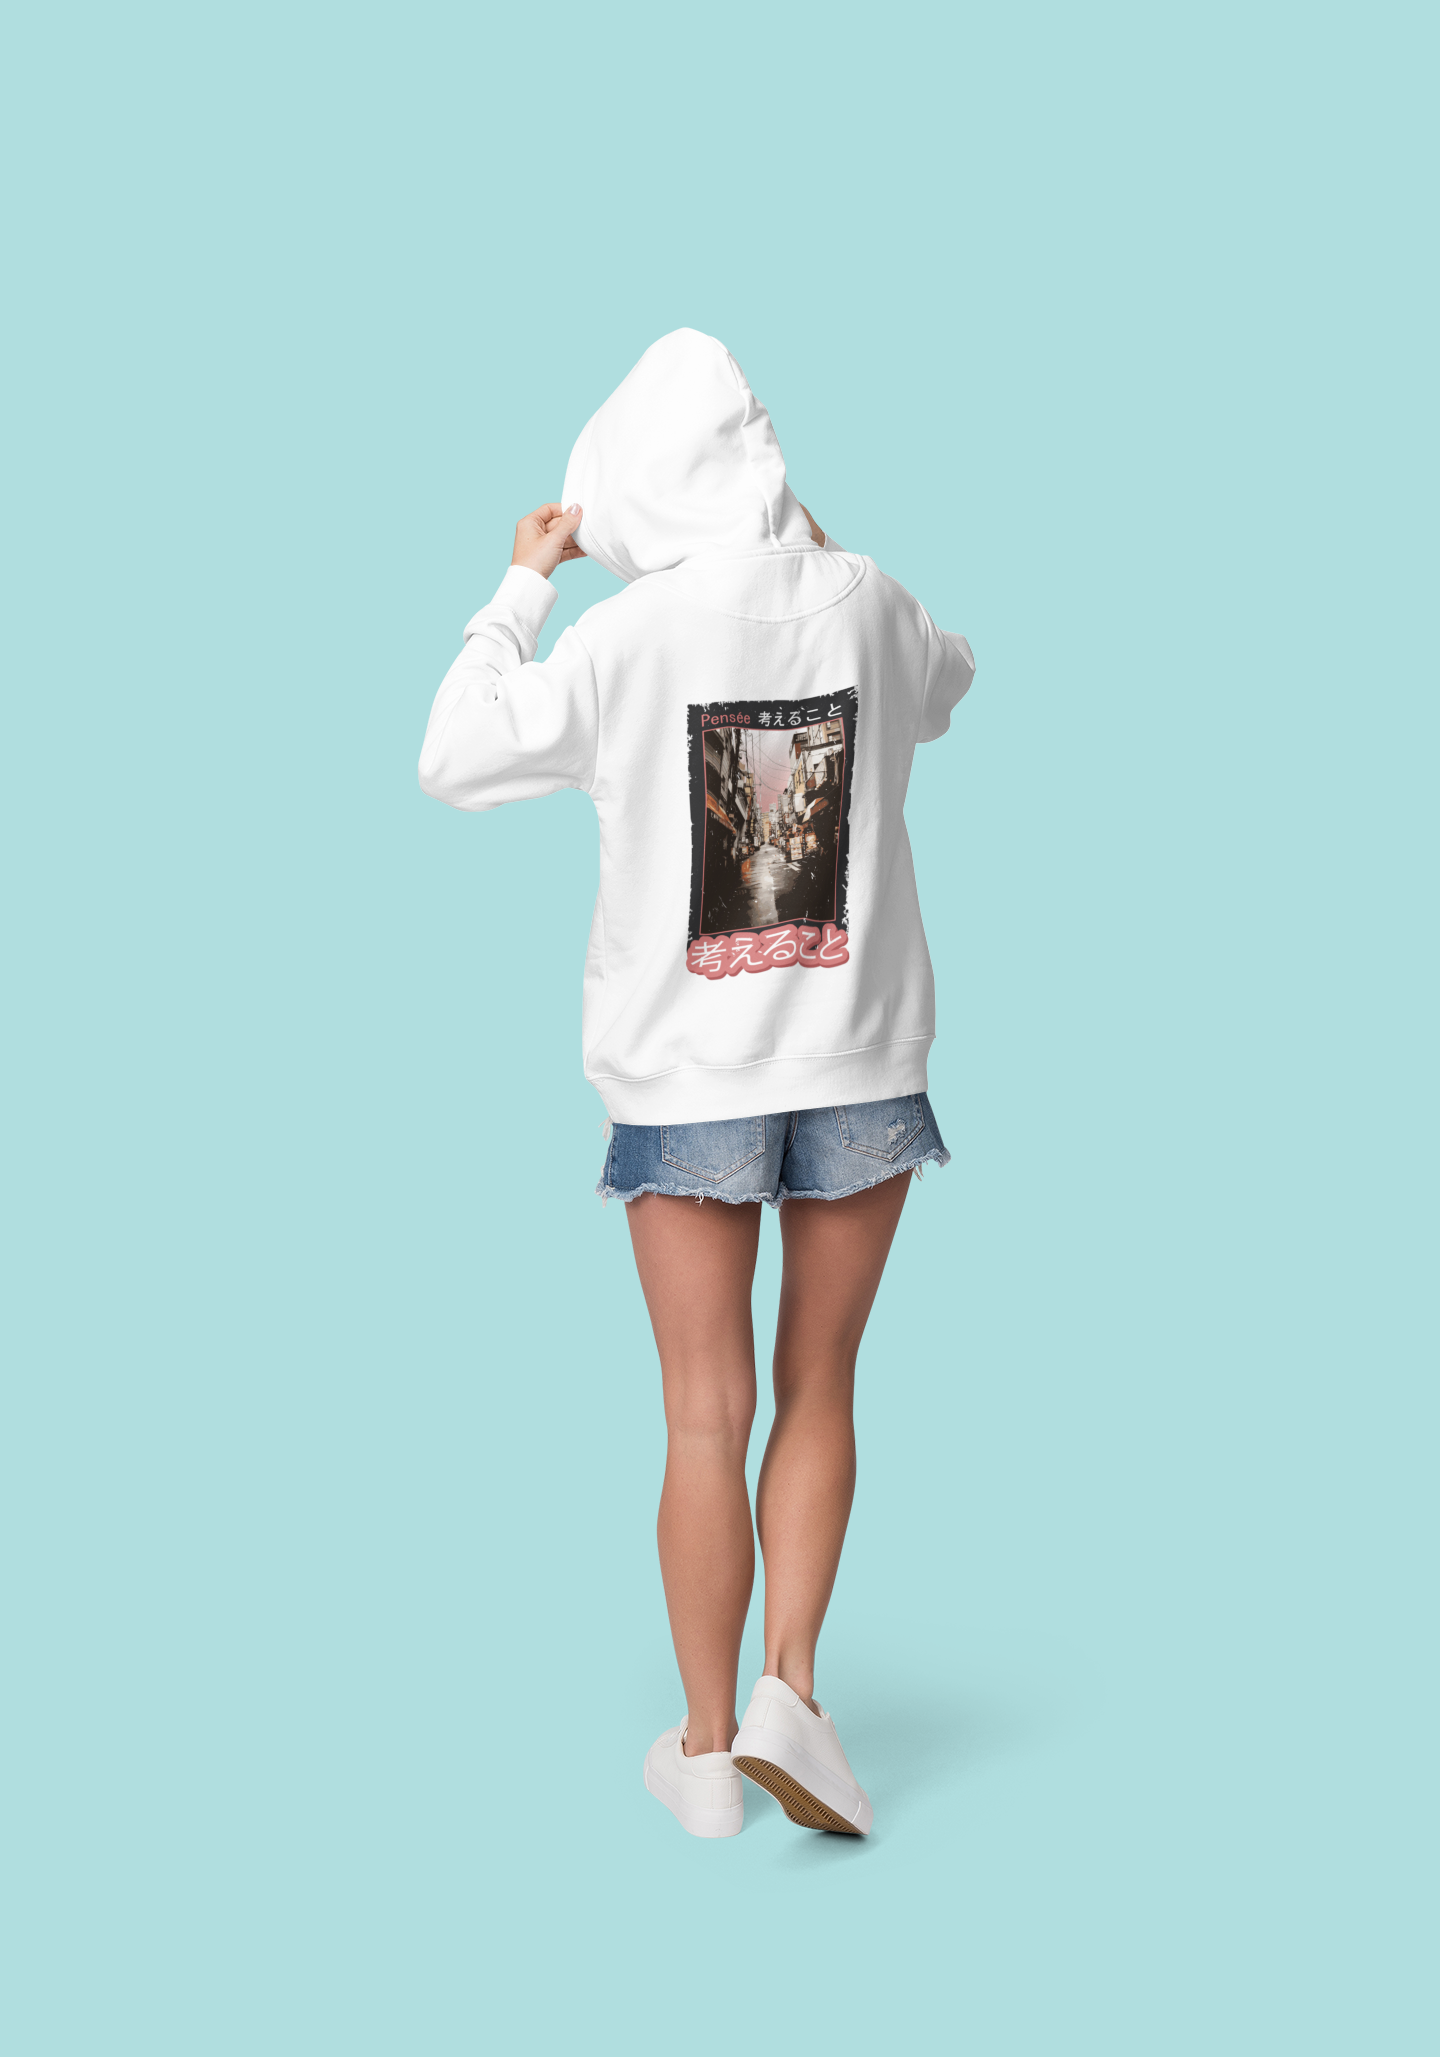 back view mockup of a woman wearing a hoodie at a studio 1797 el1